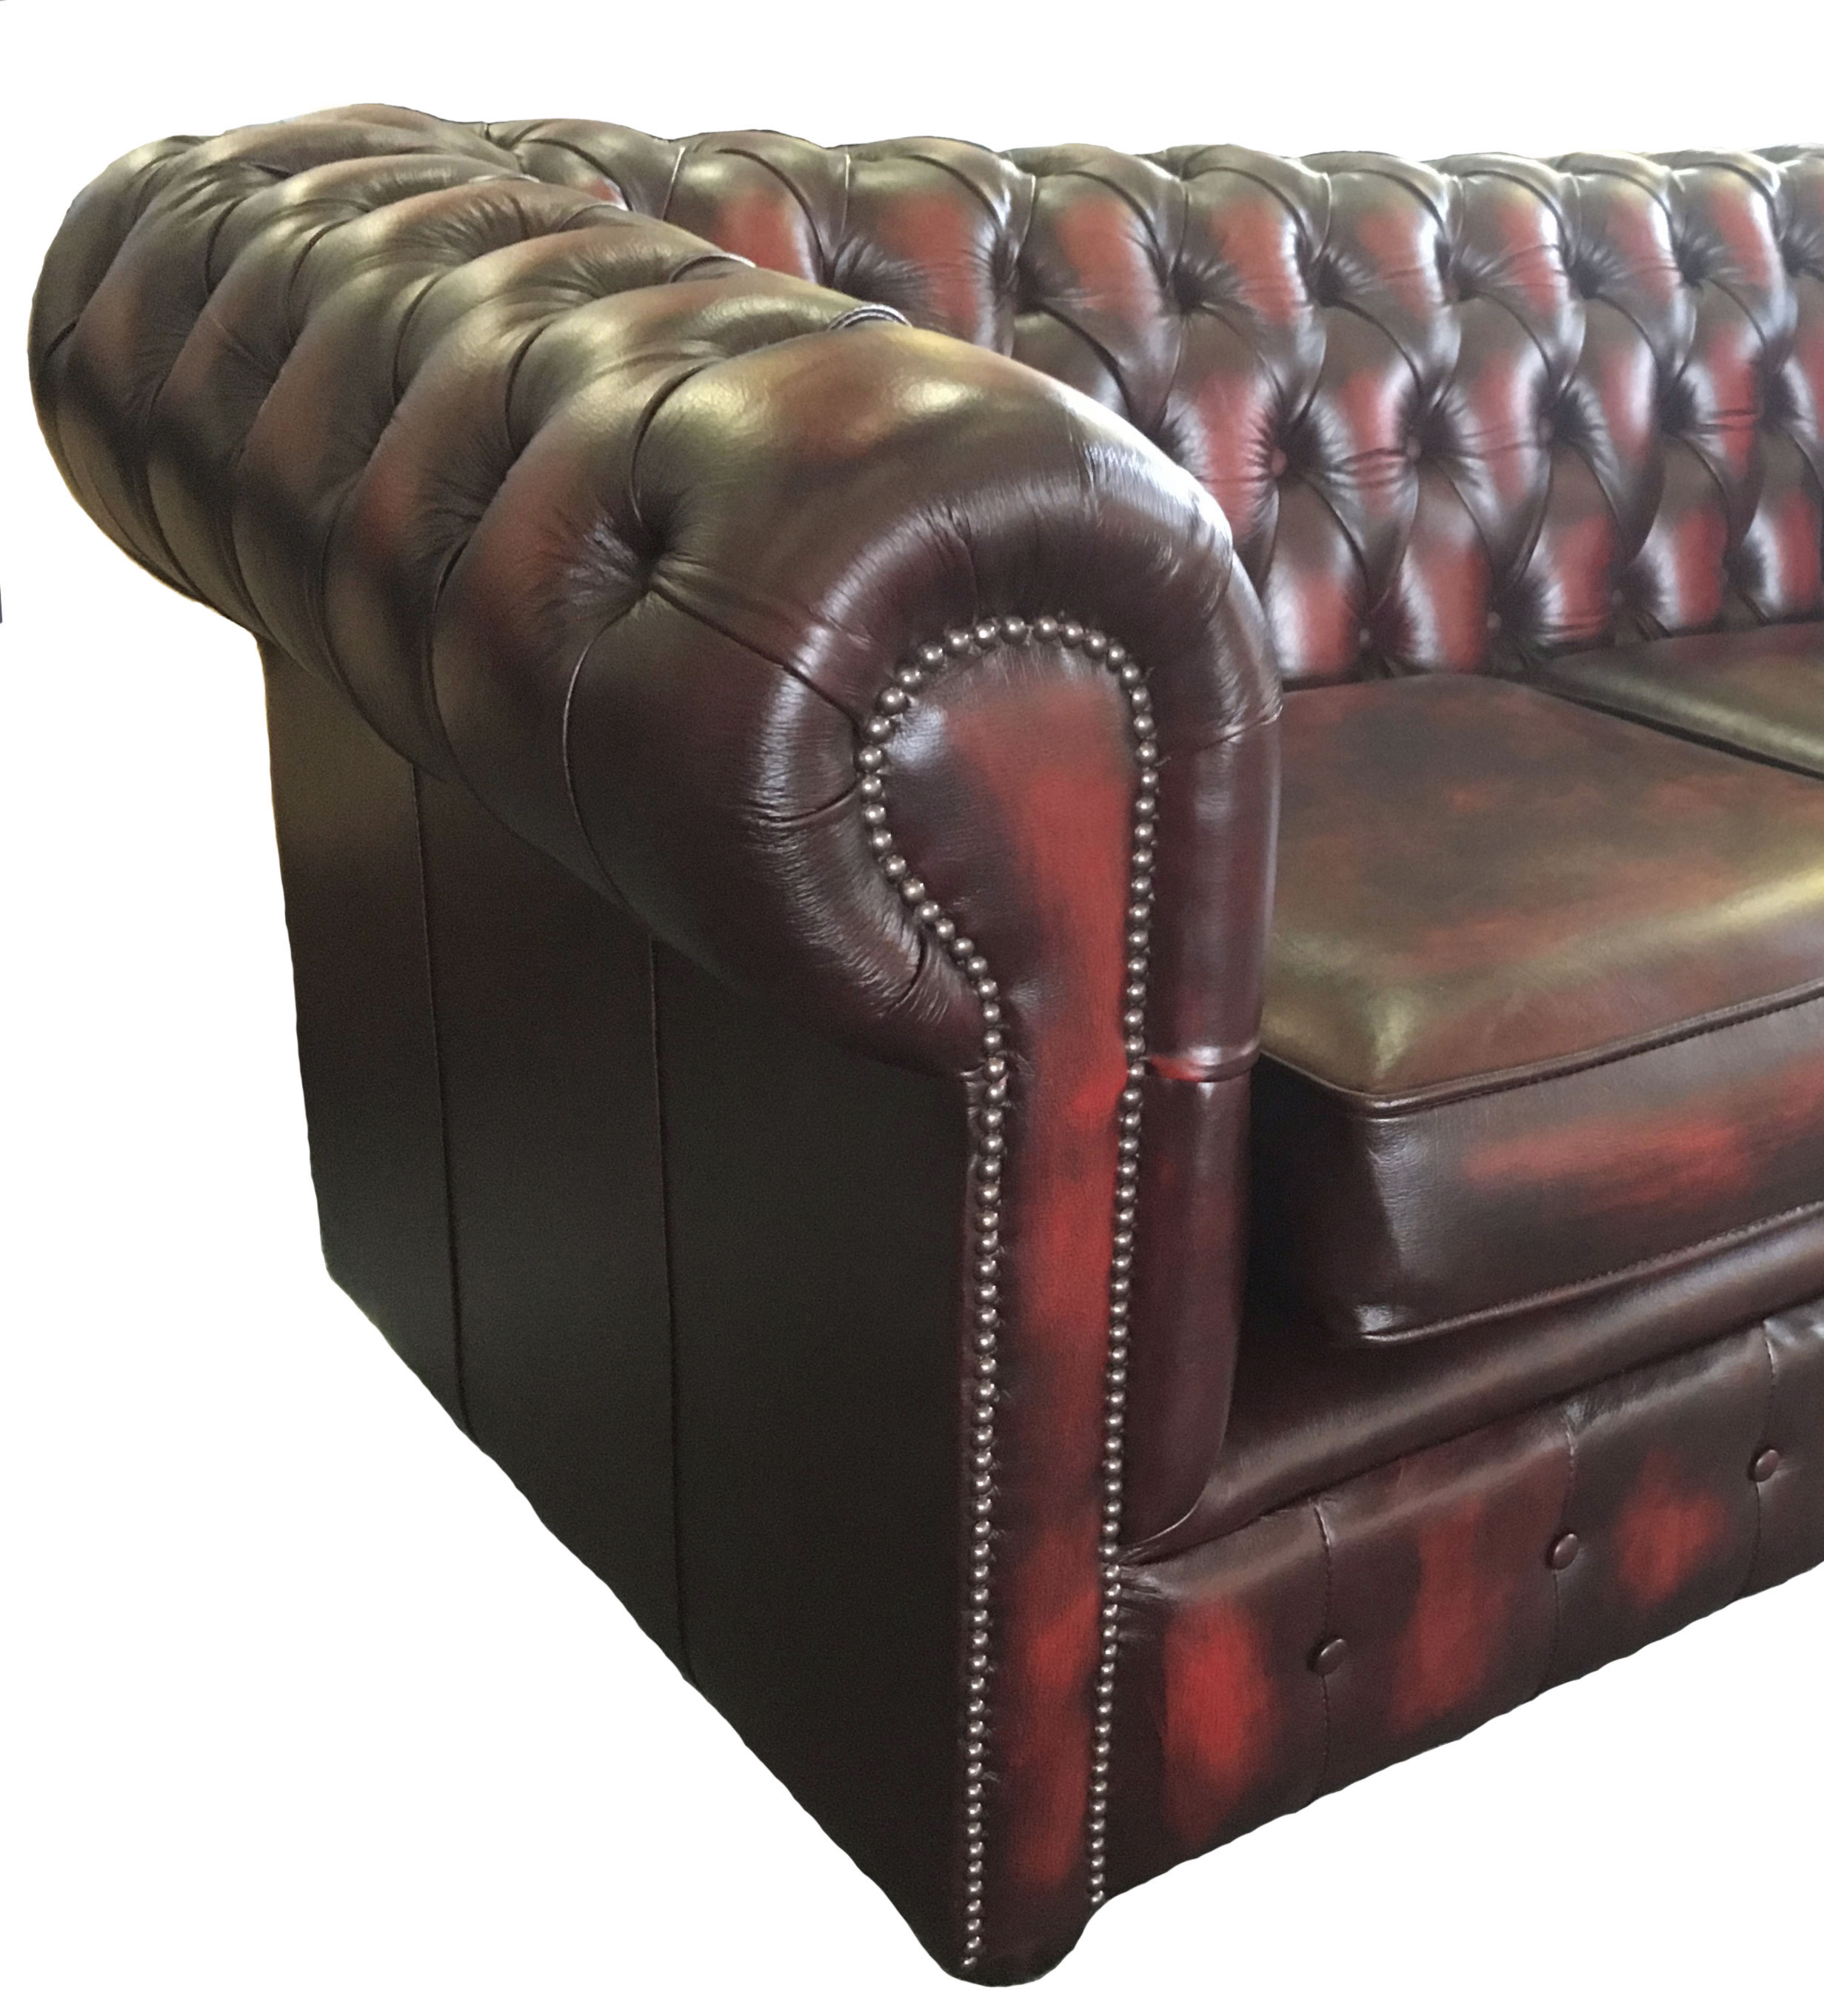 lit canap chesterfield en cuir v ritable duex places. Black Bedroom Furniture Sets. Home Design Ideas